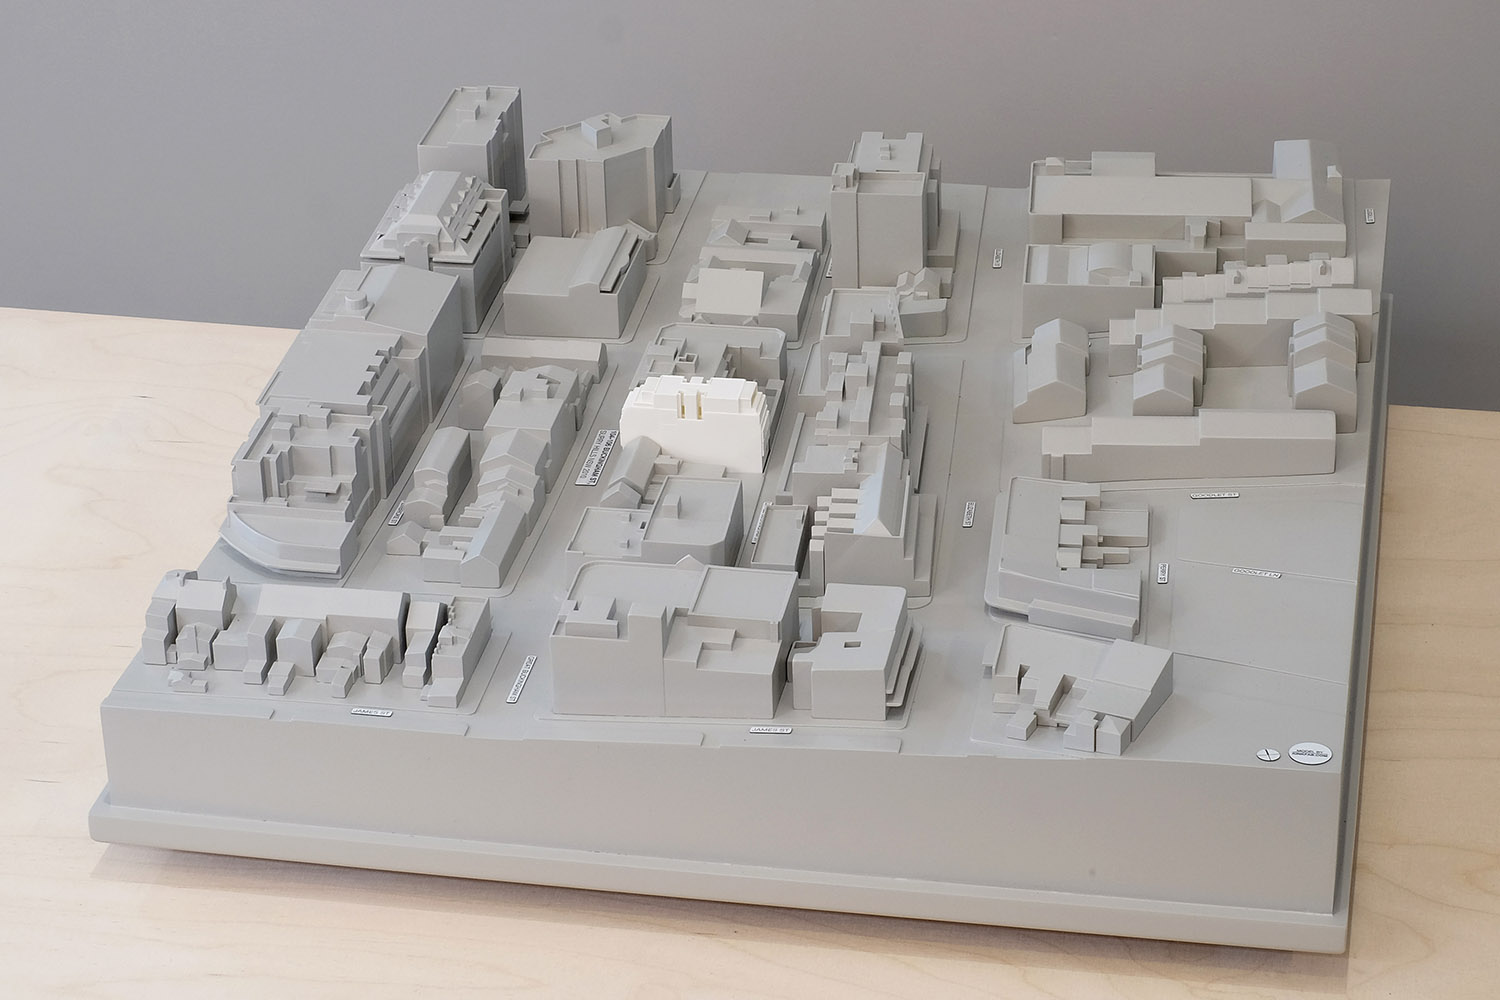 City of Sydney DA model 1_500 Buckingham St 2.jpg